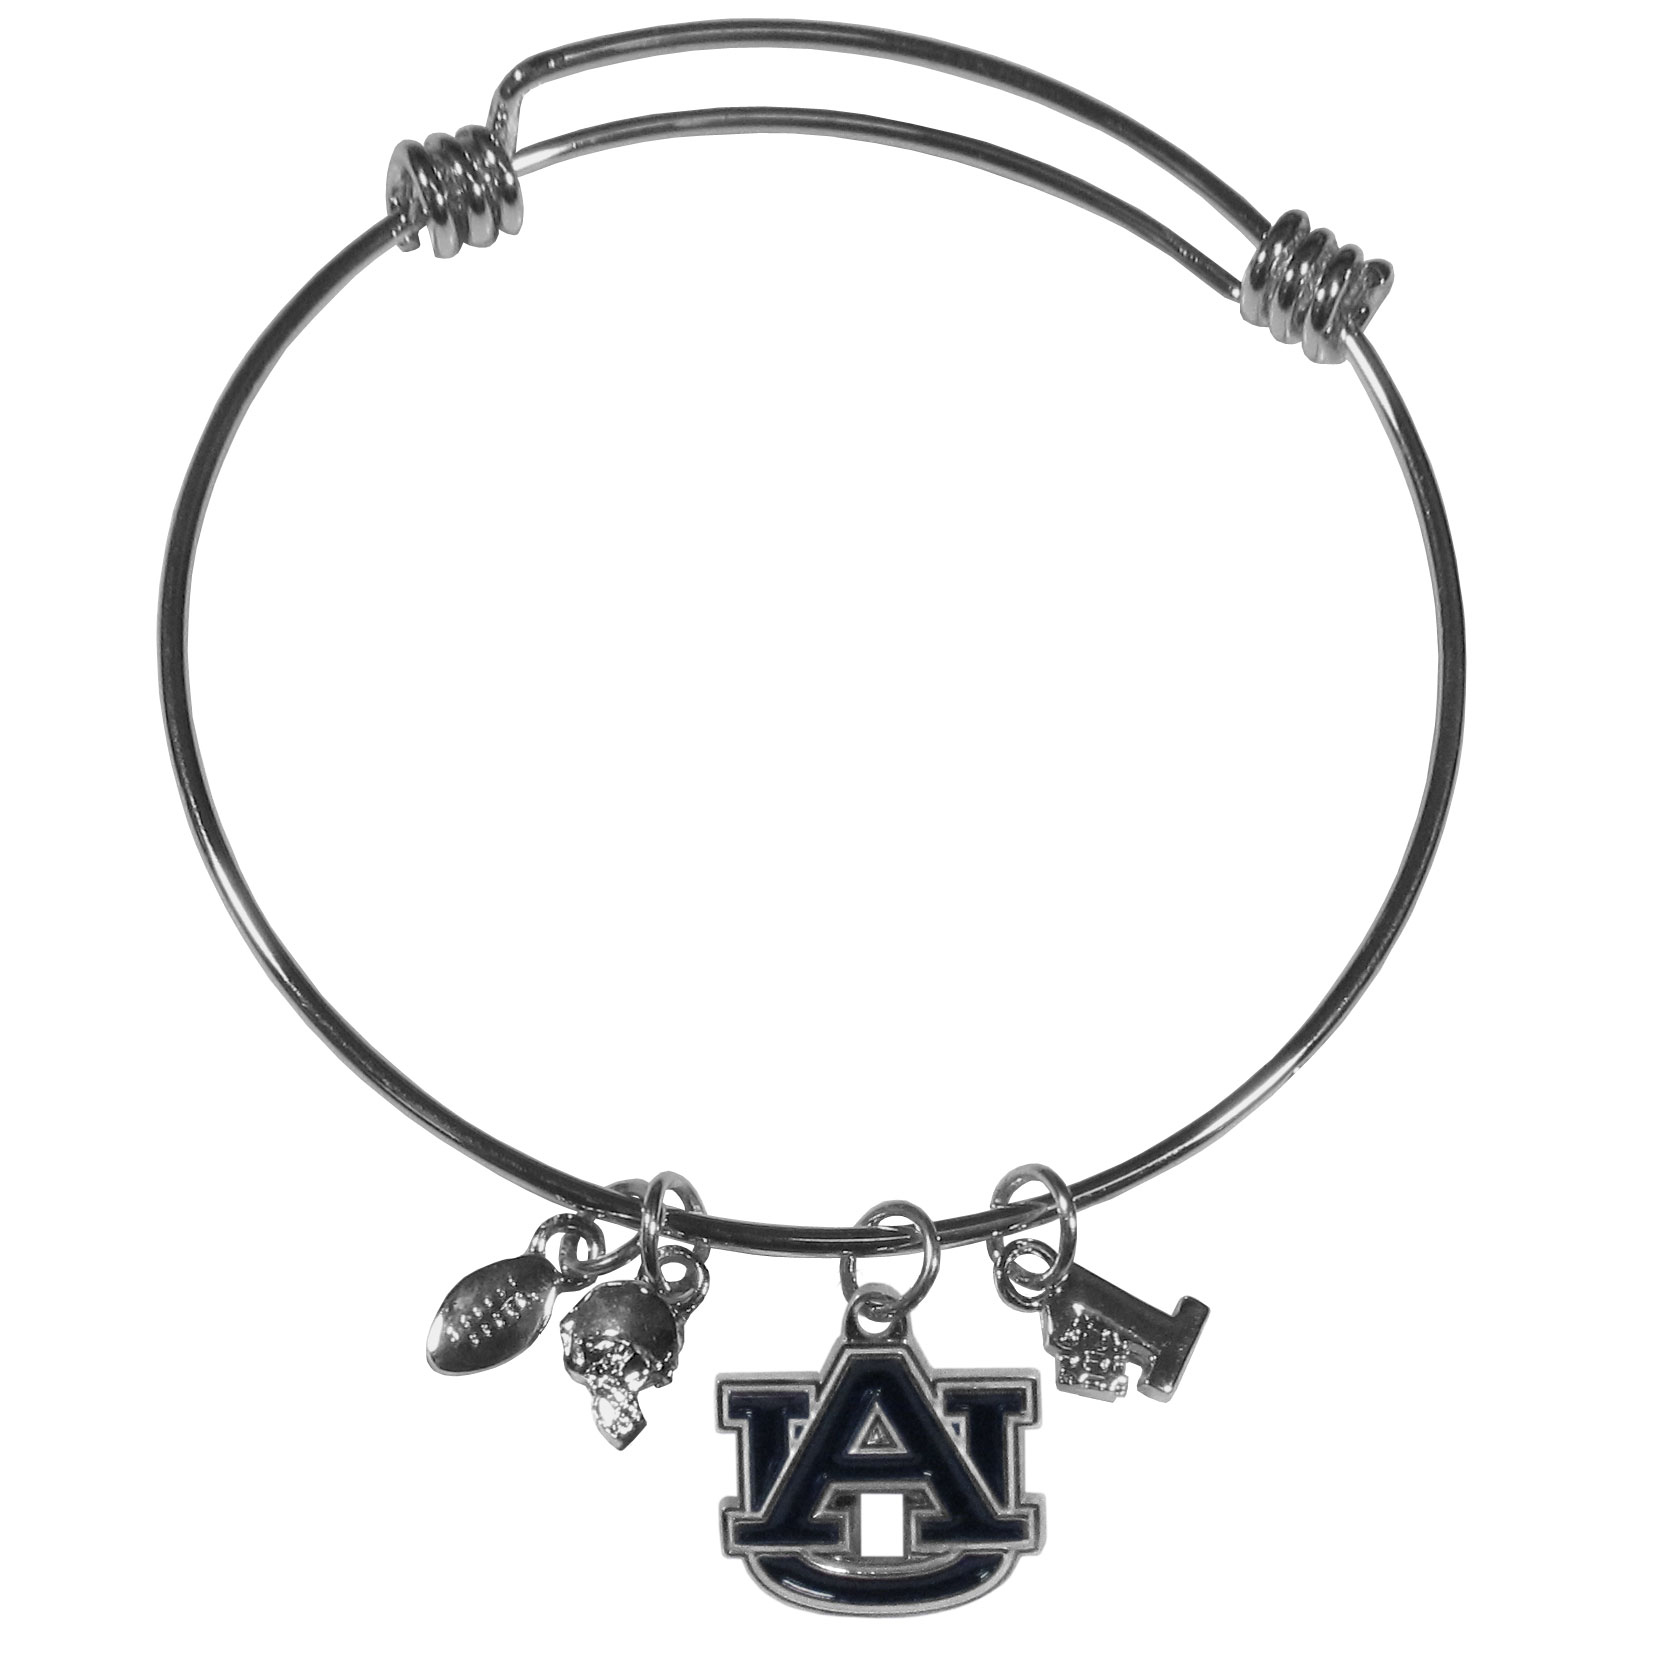 Auburn Tigers Charm Bangle Bracelet - Adjustable wire bracelets are all the rage and this Auburn Tigers bracelet matches the popular trend with your beloved team. The bracelet features 4 charms in total, each feature exceptional detail and the team charm has enameled team colors.